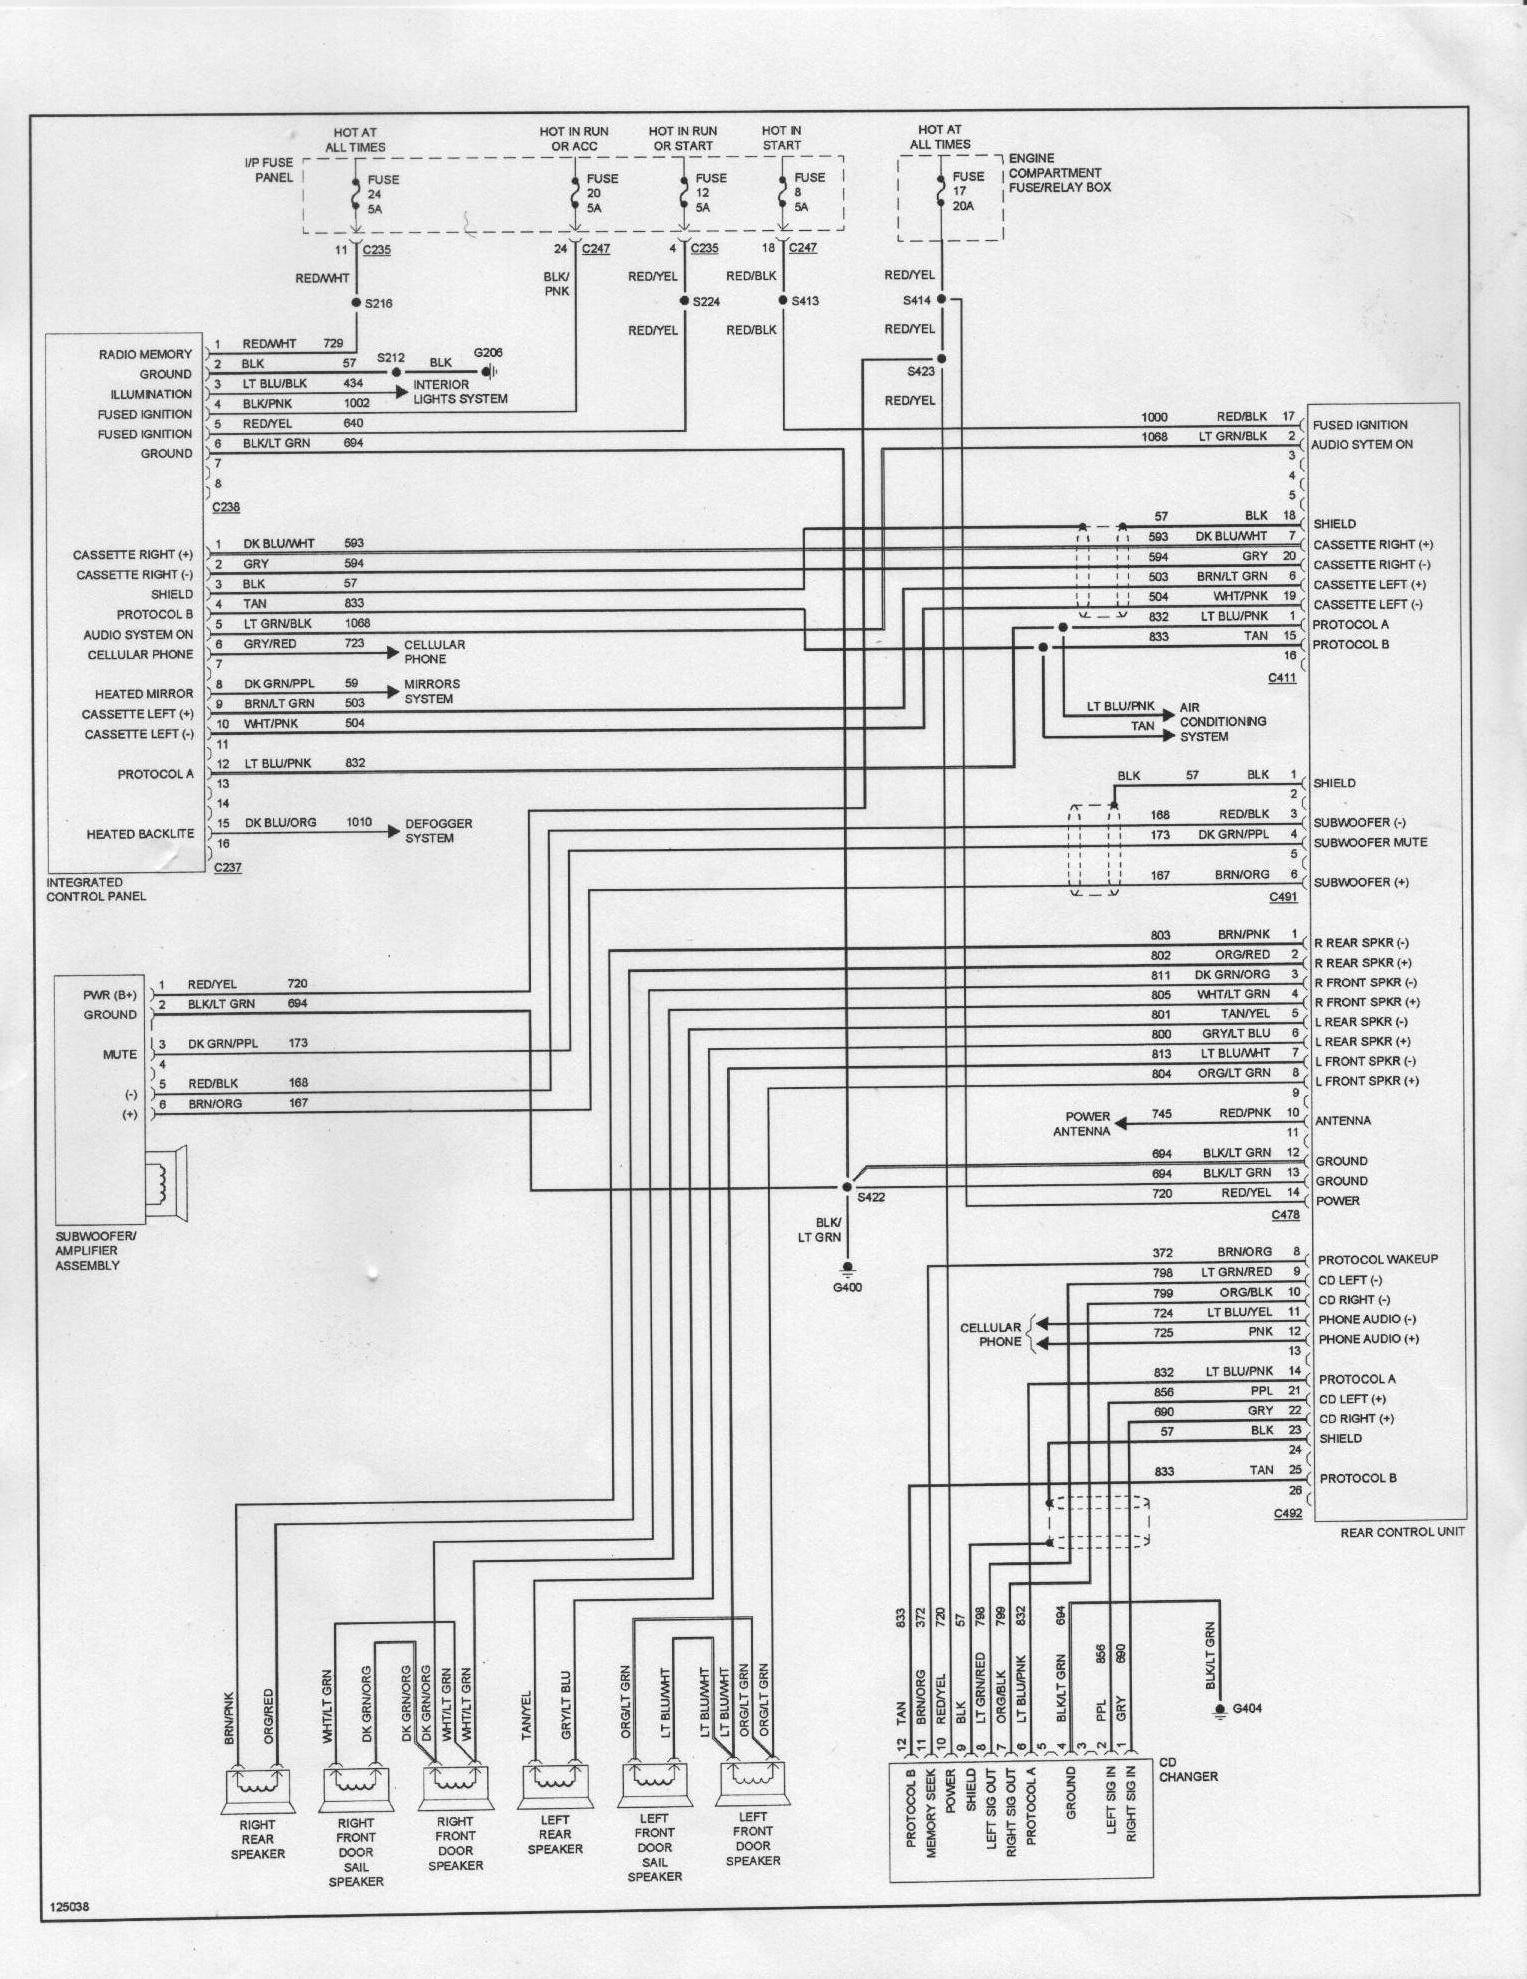 46509d1178551791 scosche orange wire _______ diagram96 scosche gm2000 wiring diagram scosche gm2000 wire harness \u2022 wiring scosche wiring harness diagrams ford at aneh.co